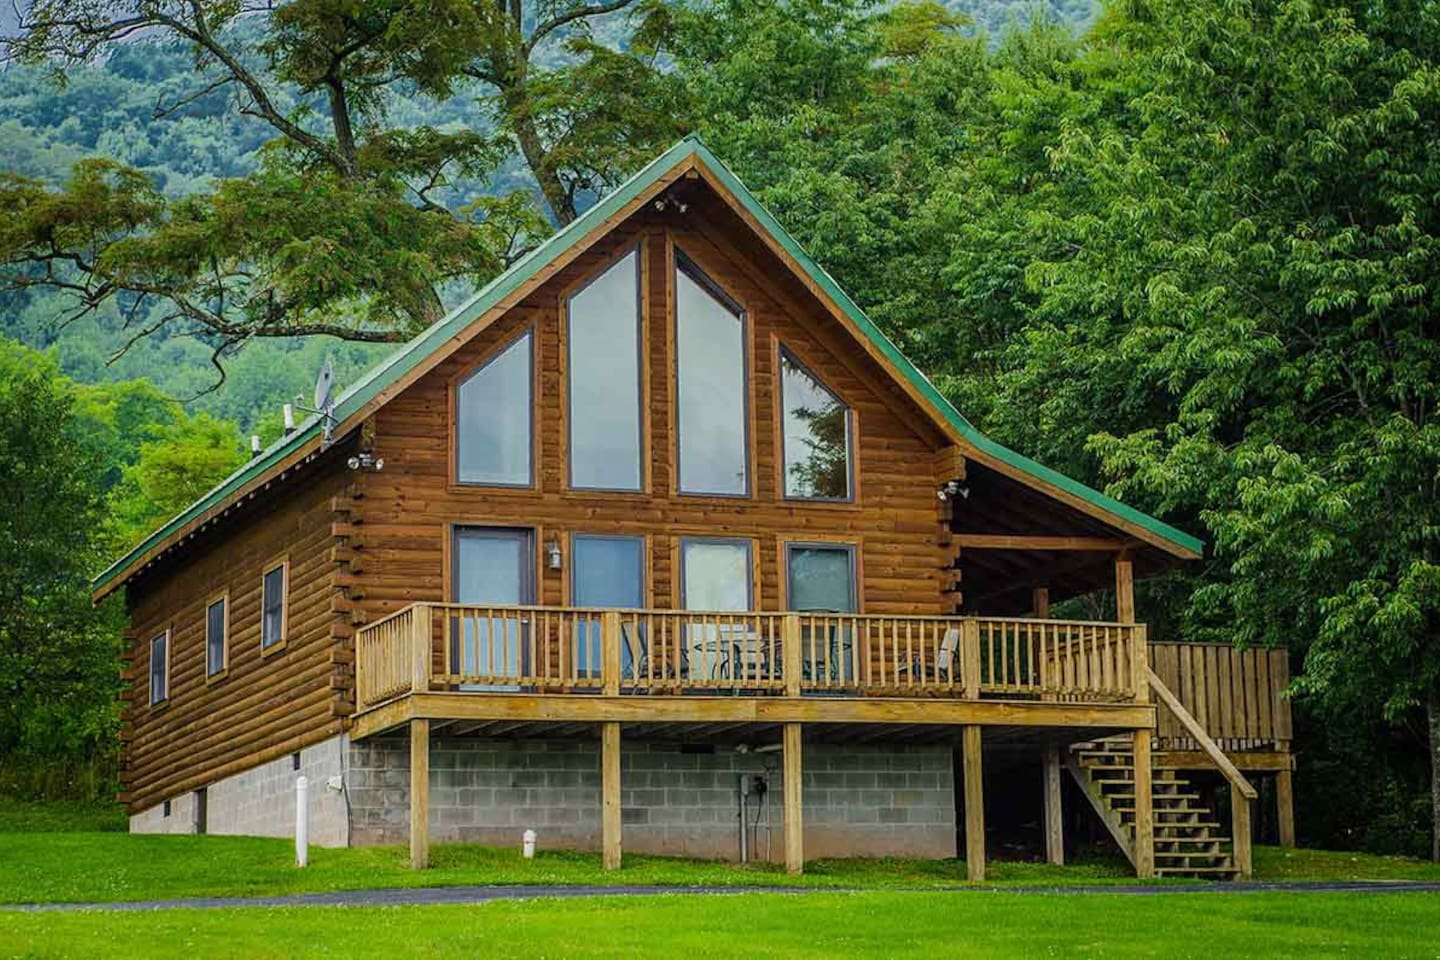 windows large luxury at lush s wooden our to outdoor tub deck exterior of hot bedroom view wv in cabins harman a next with and cabin tour log